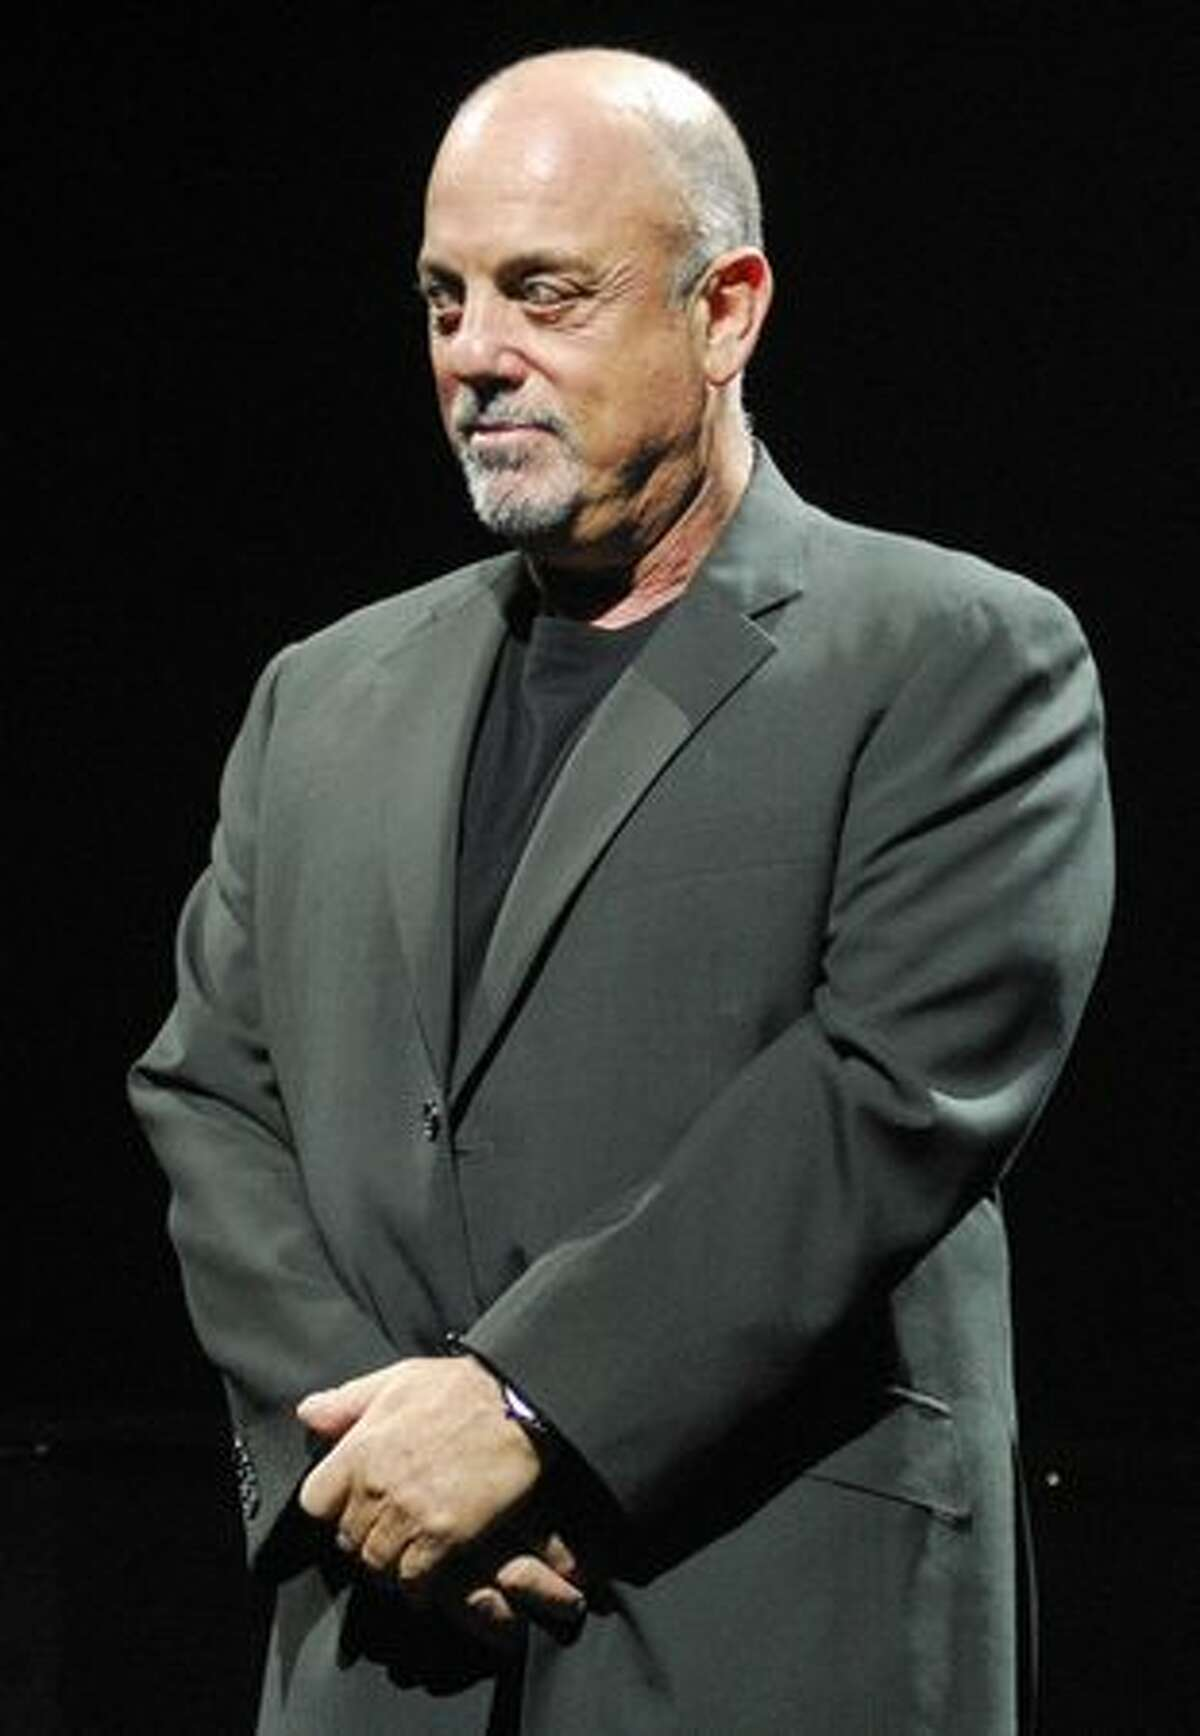 Billy Joel waits for Elton John to take the stage.